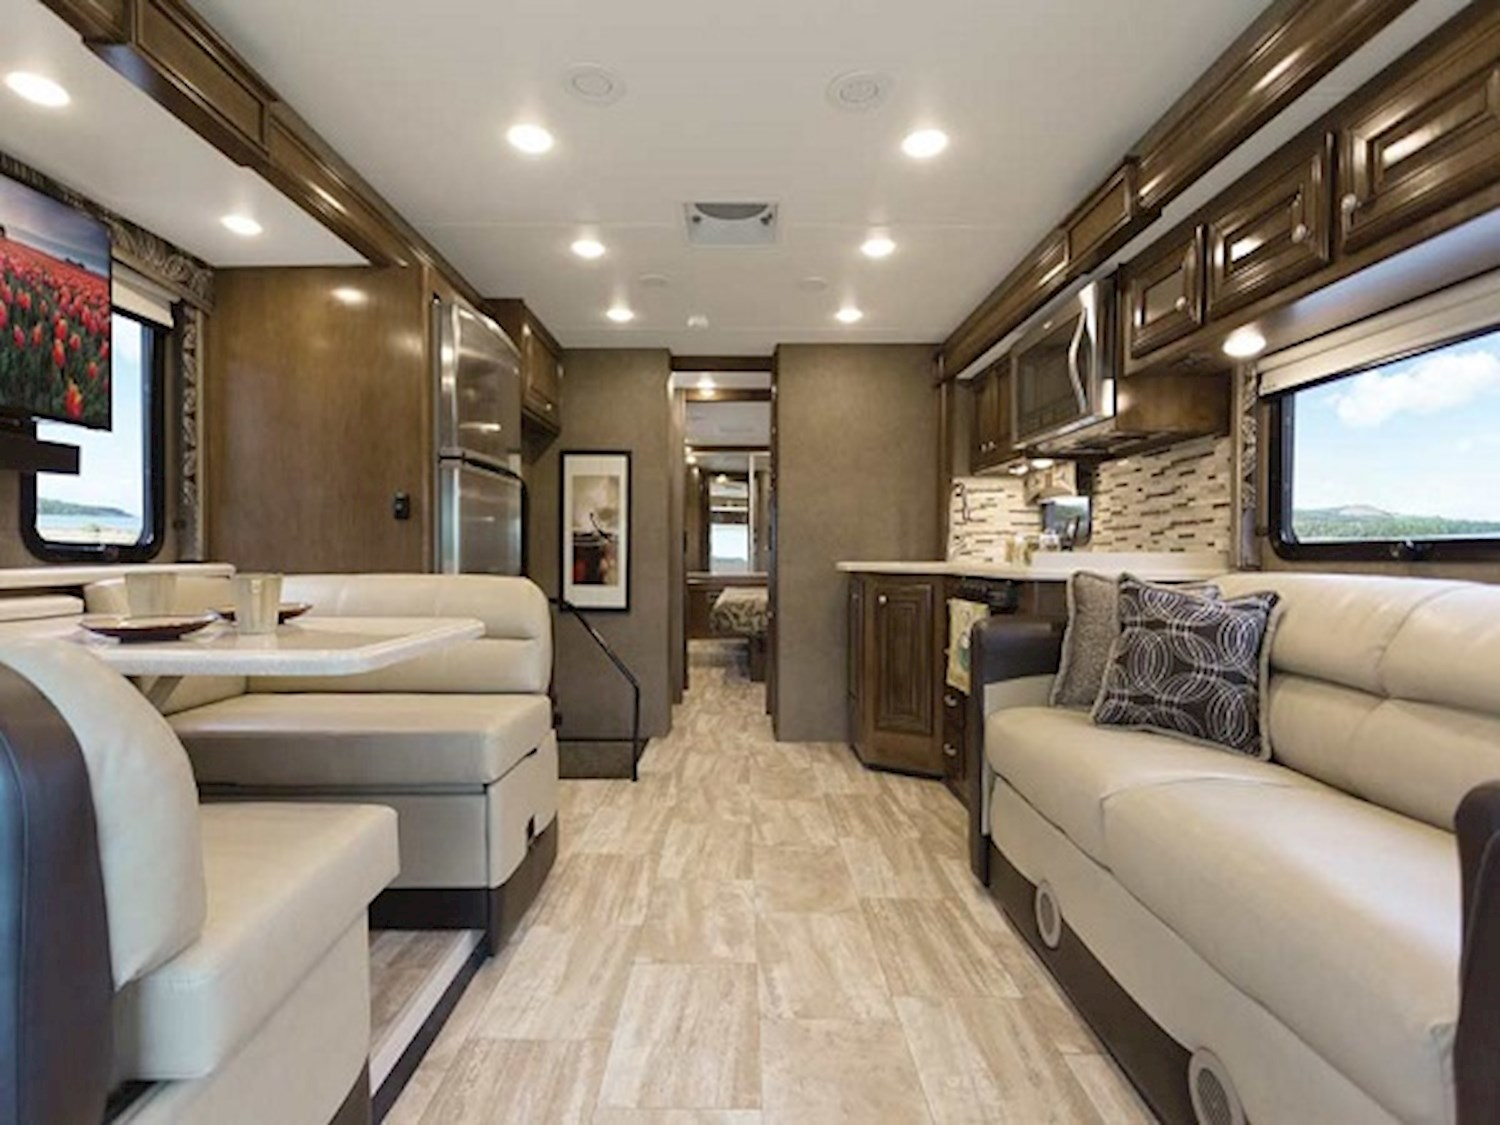 2017 class a diesel motorhomes provides ultimate luxury from thor rh thormotorcoach com Motorhome Interior Trim Motorhome Interior Trim